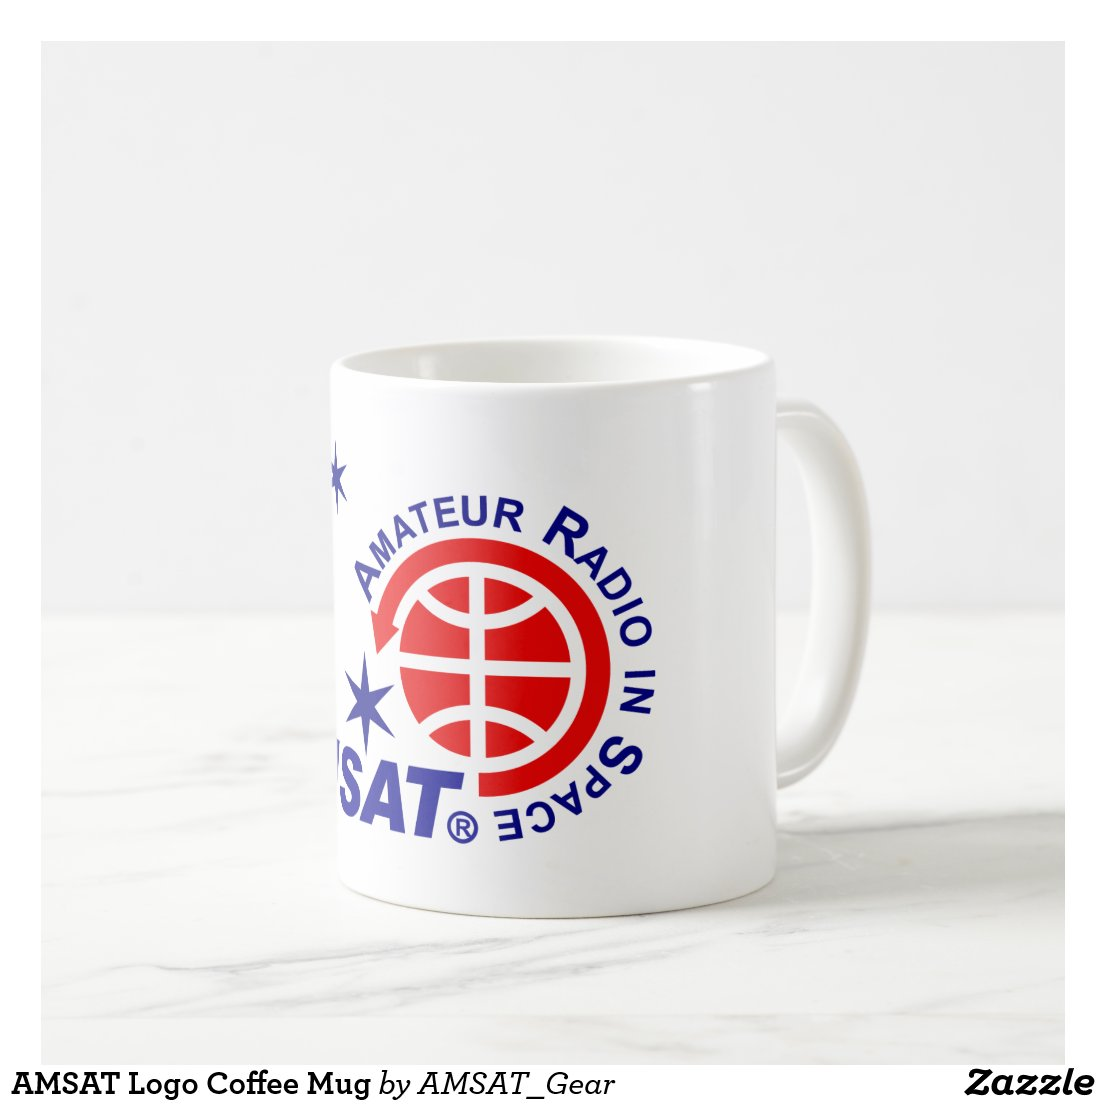 AMSAT Logo Coffee Mug